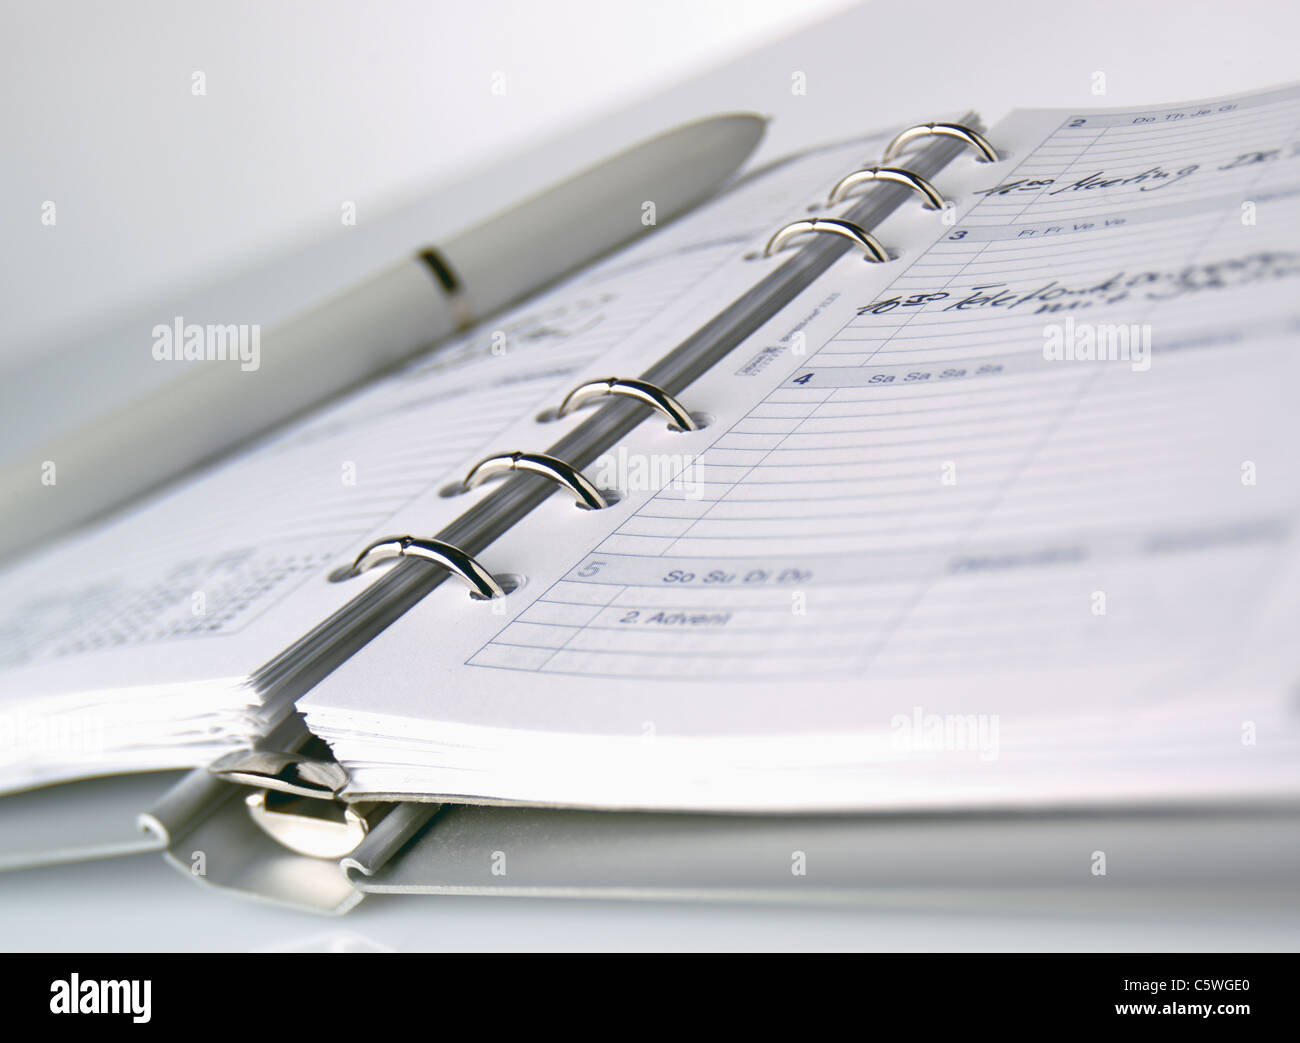 Close up of ring journal avec stylo contre fond blanc Photo Stock